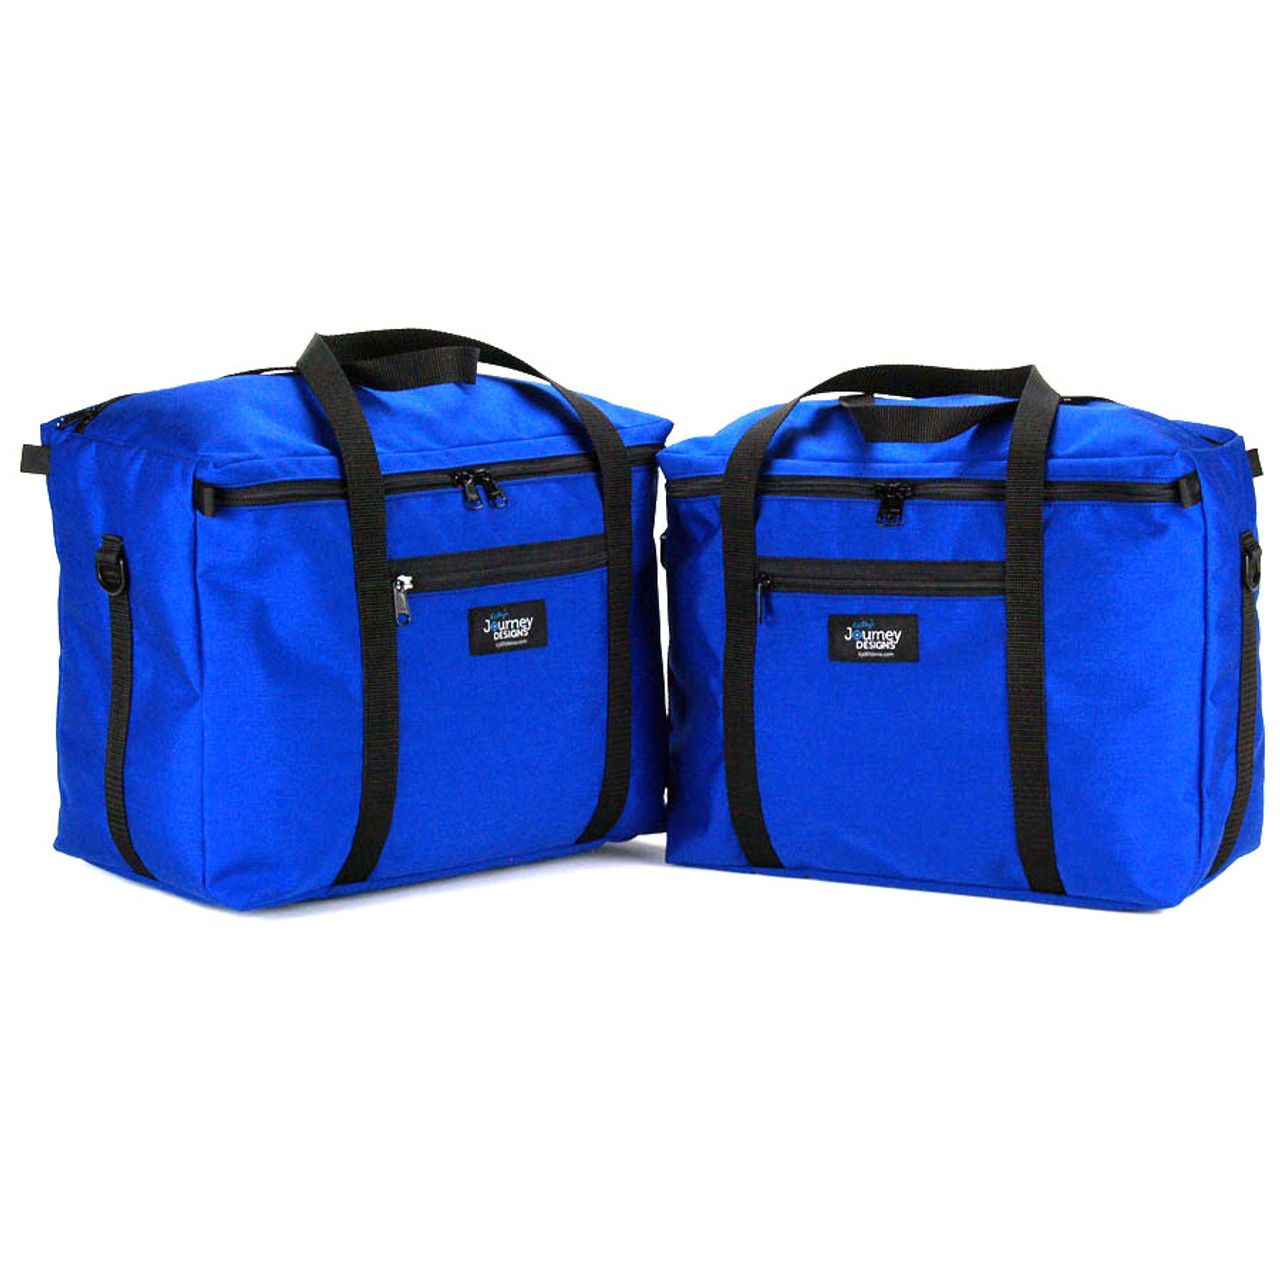 BMW R1200GS VARIO Pannier liner bags inner bags expandable in Blue colour